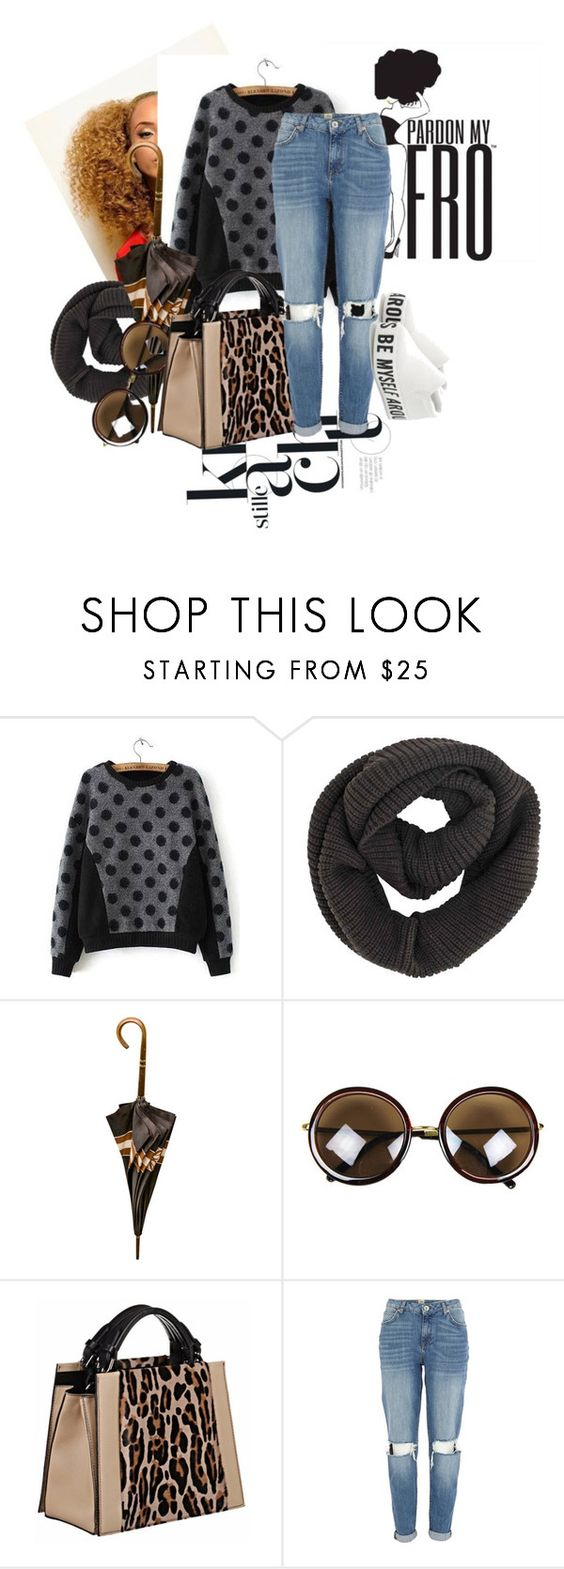 """""""Pardon my Afro n my outfit"""" by naturallydee ❤ liked on Polyvore featuring Loewe, Caroline De Marchi, River Island, women's clothing, women's fashion, women, female, woman, misses and juniors"""